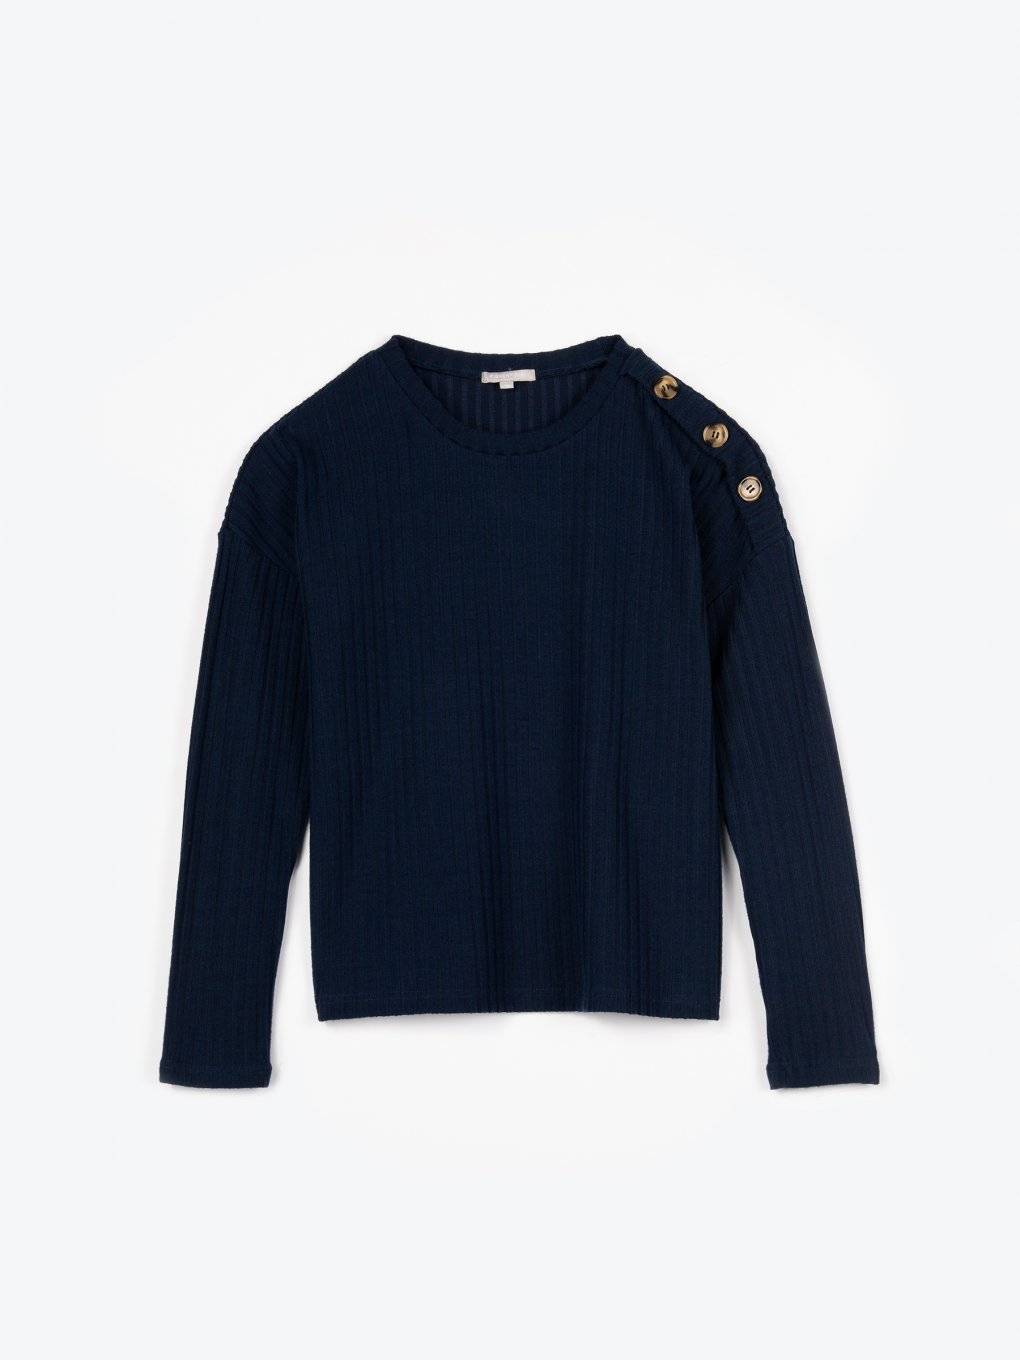 Ribbed pullover with decorative buttons